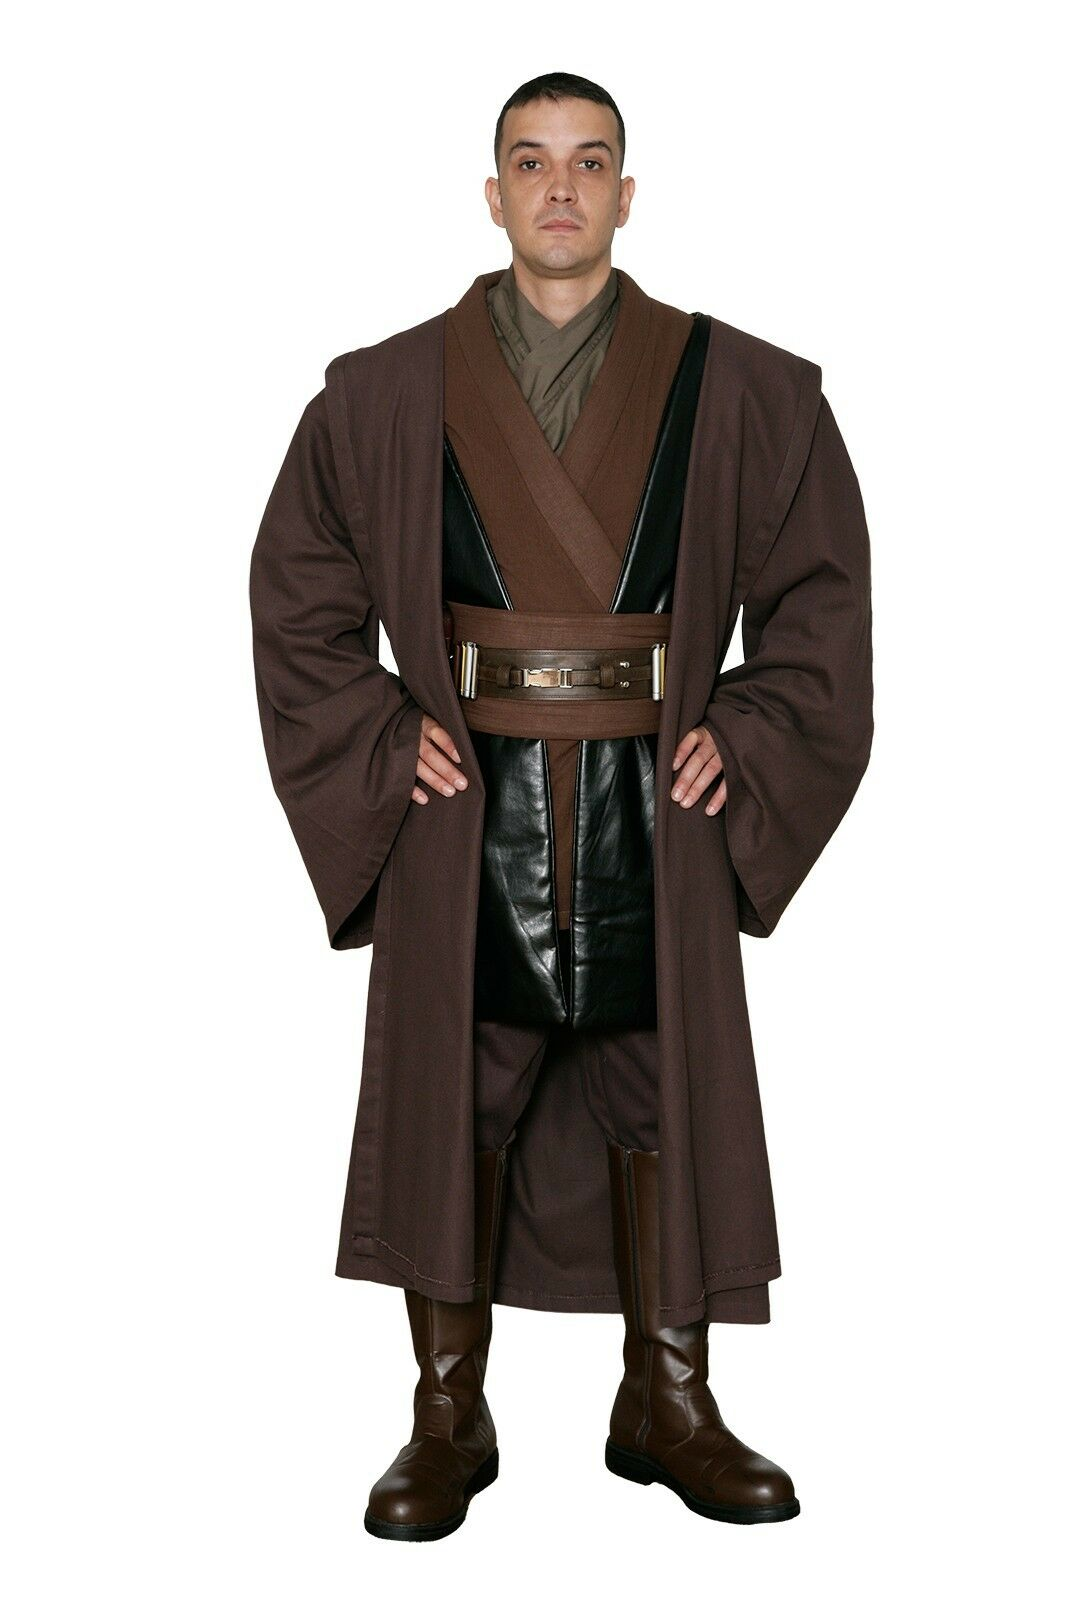 get an officially licensed adult anakin skywalker costume from our star wars halloween costumes